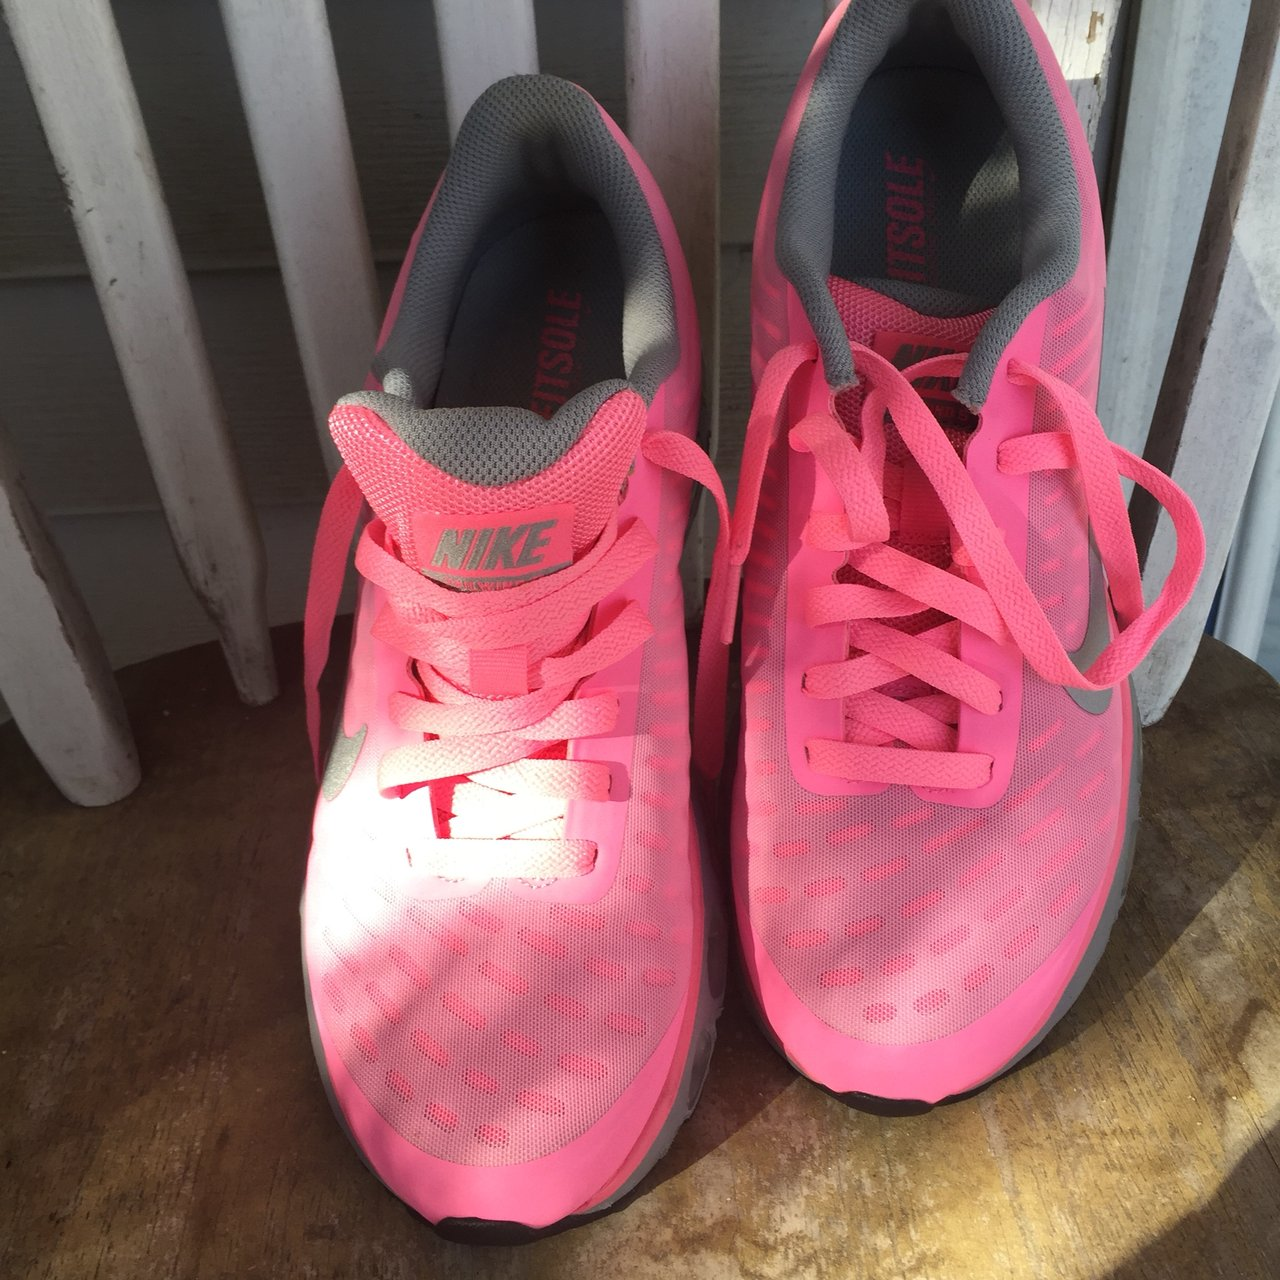 Nike Neon Pink AIR MAX SNEAKERS. Super comfortable 55c1a16abe46